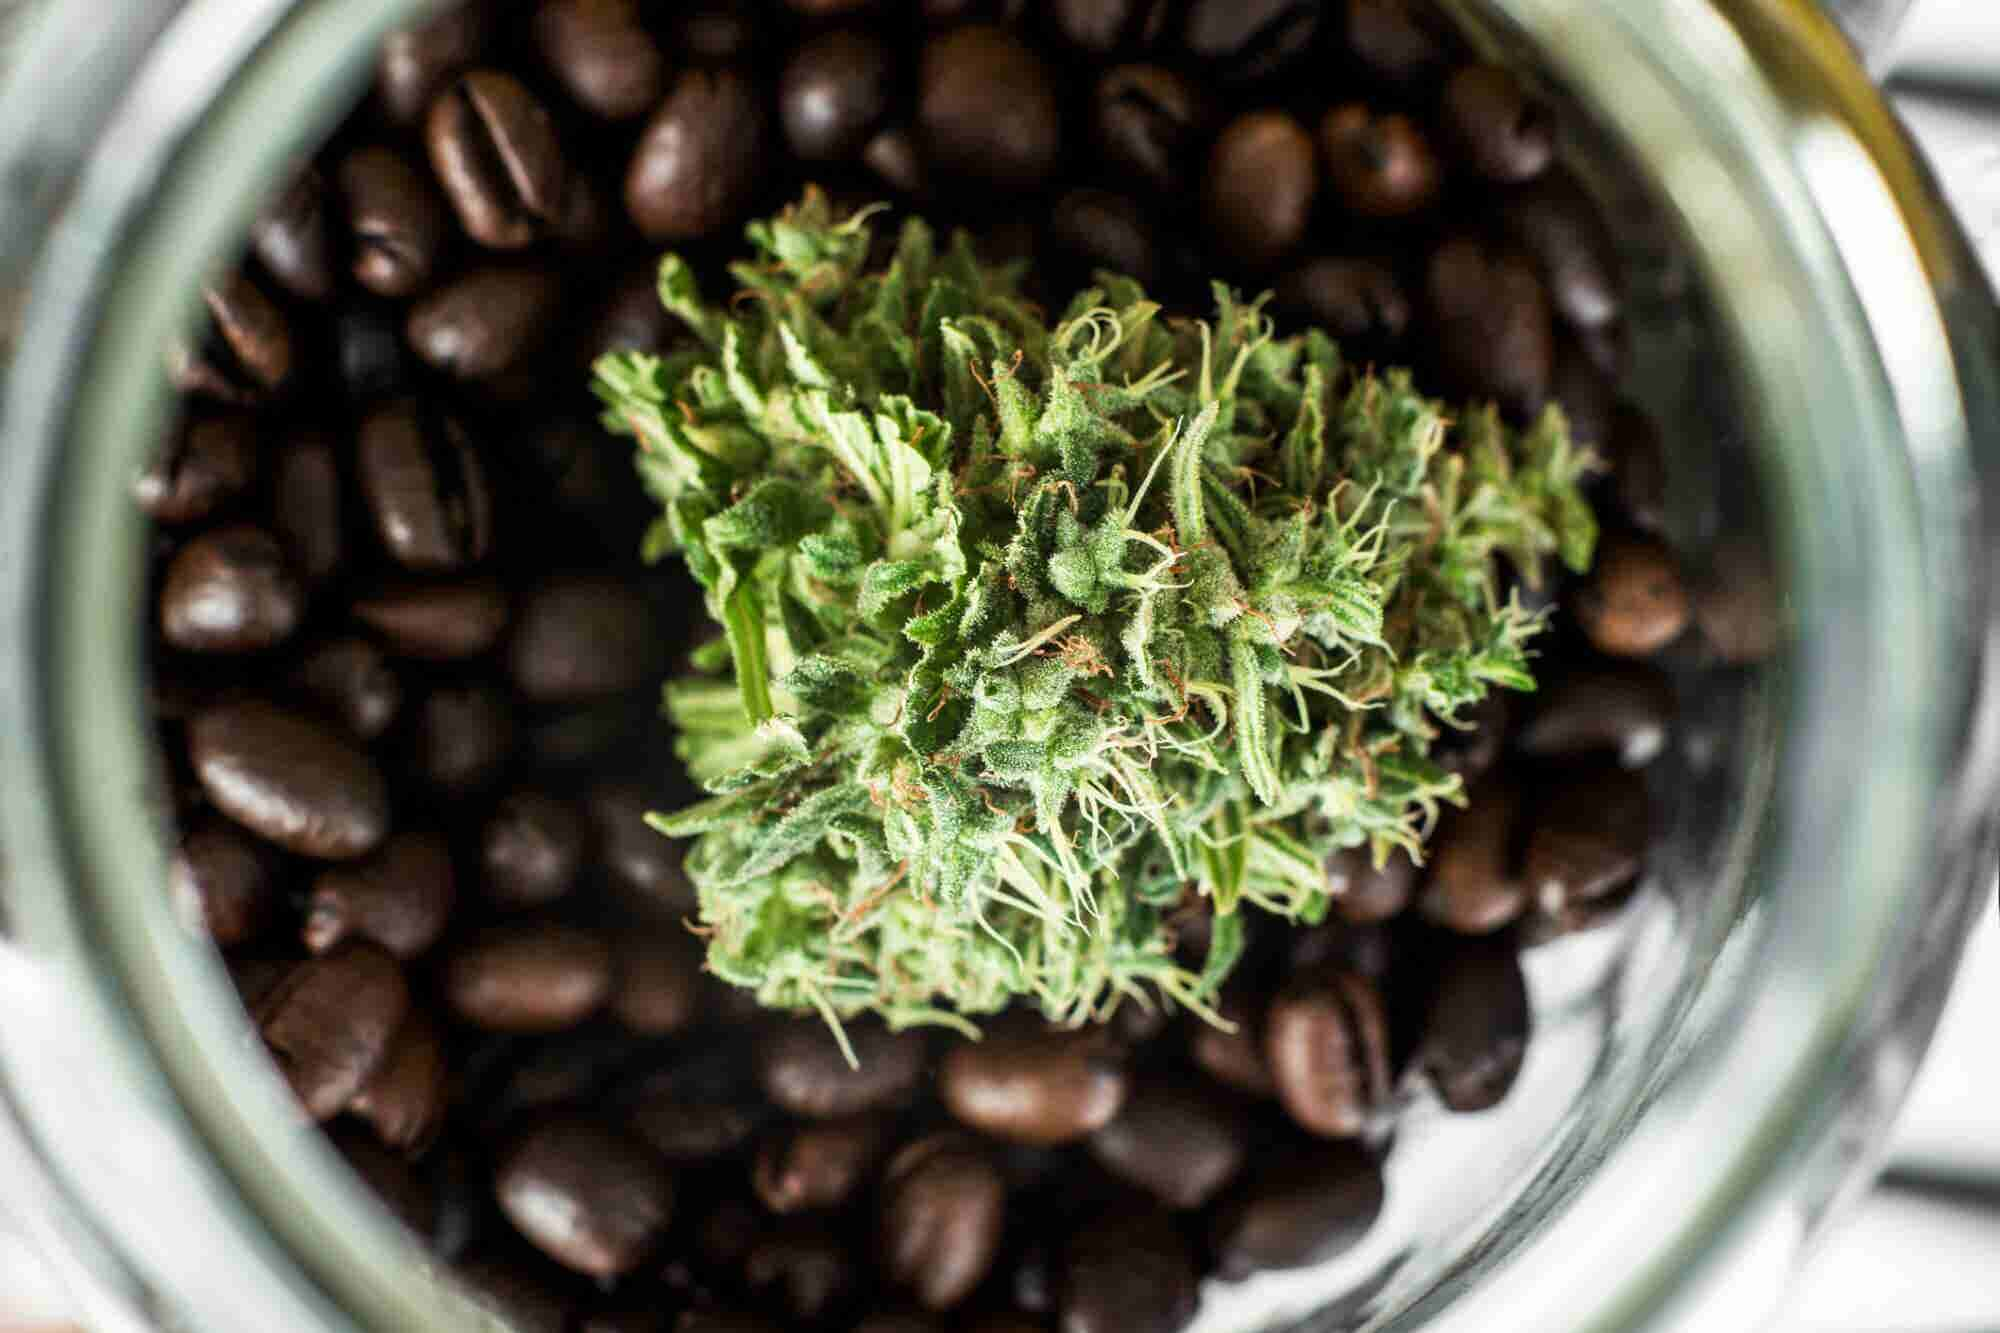 These 6 Coffee Marketing Tricks Are a Perfect Blend for Your Cannabis Brand